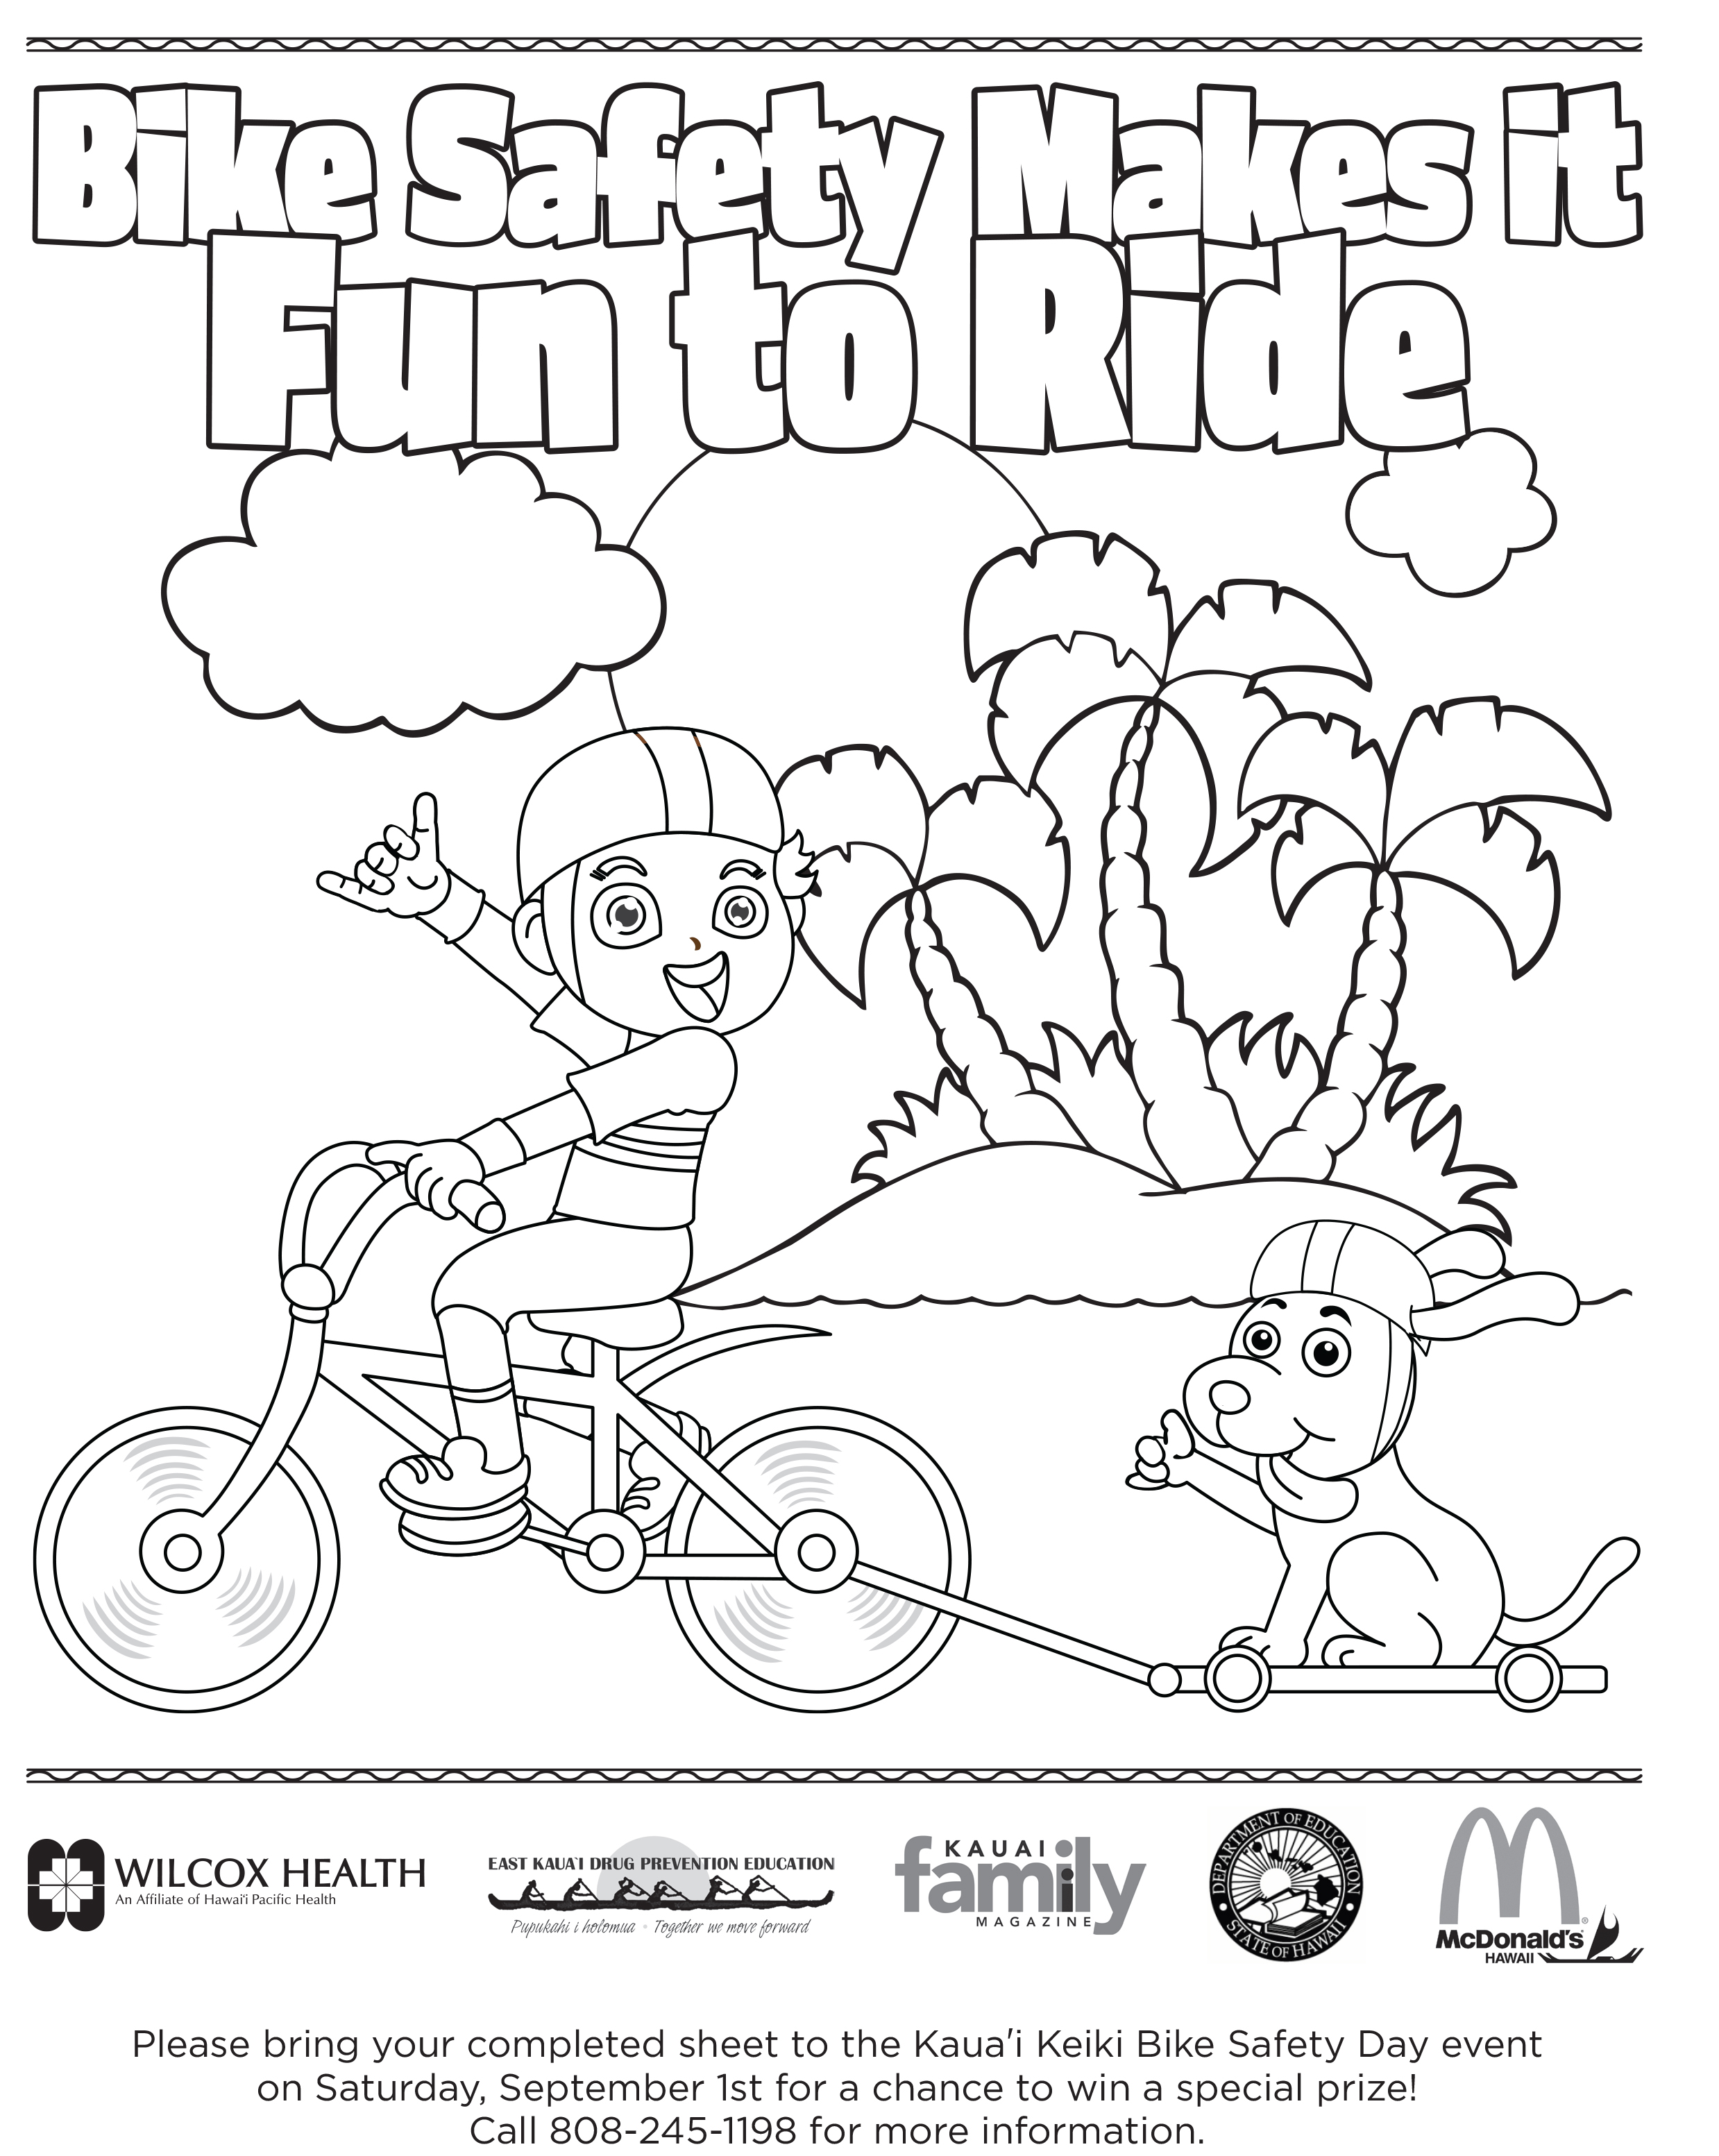 mcgruff the crime dog internet safety coloring book. check ...